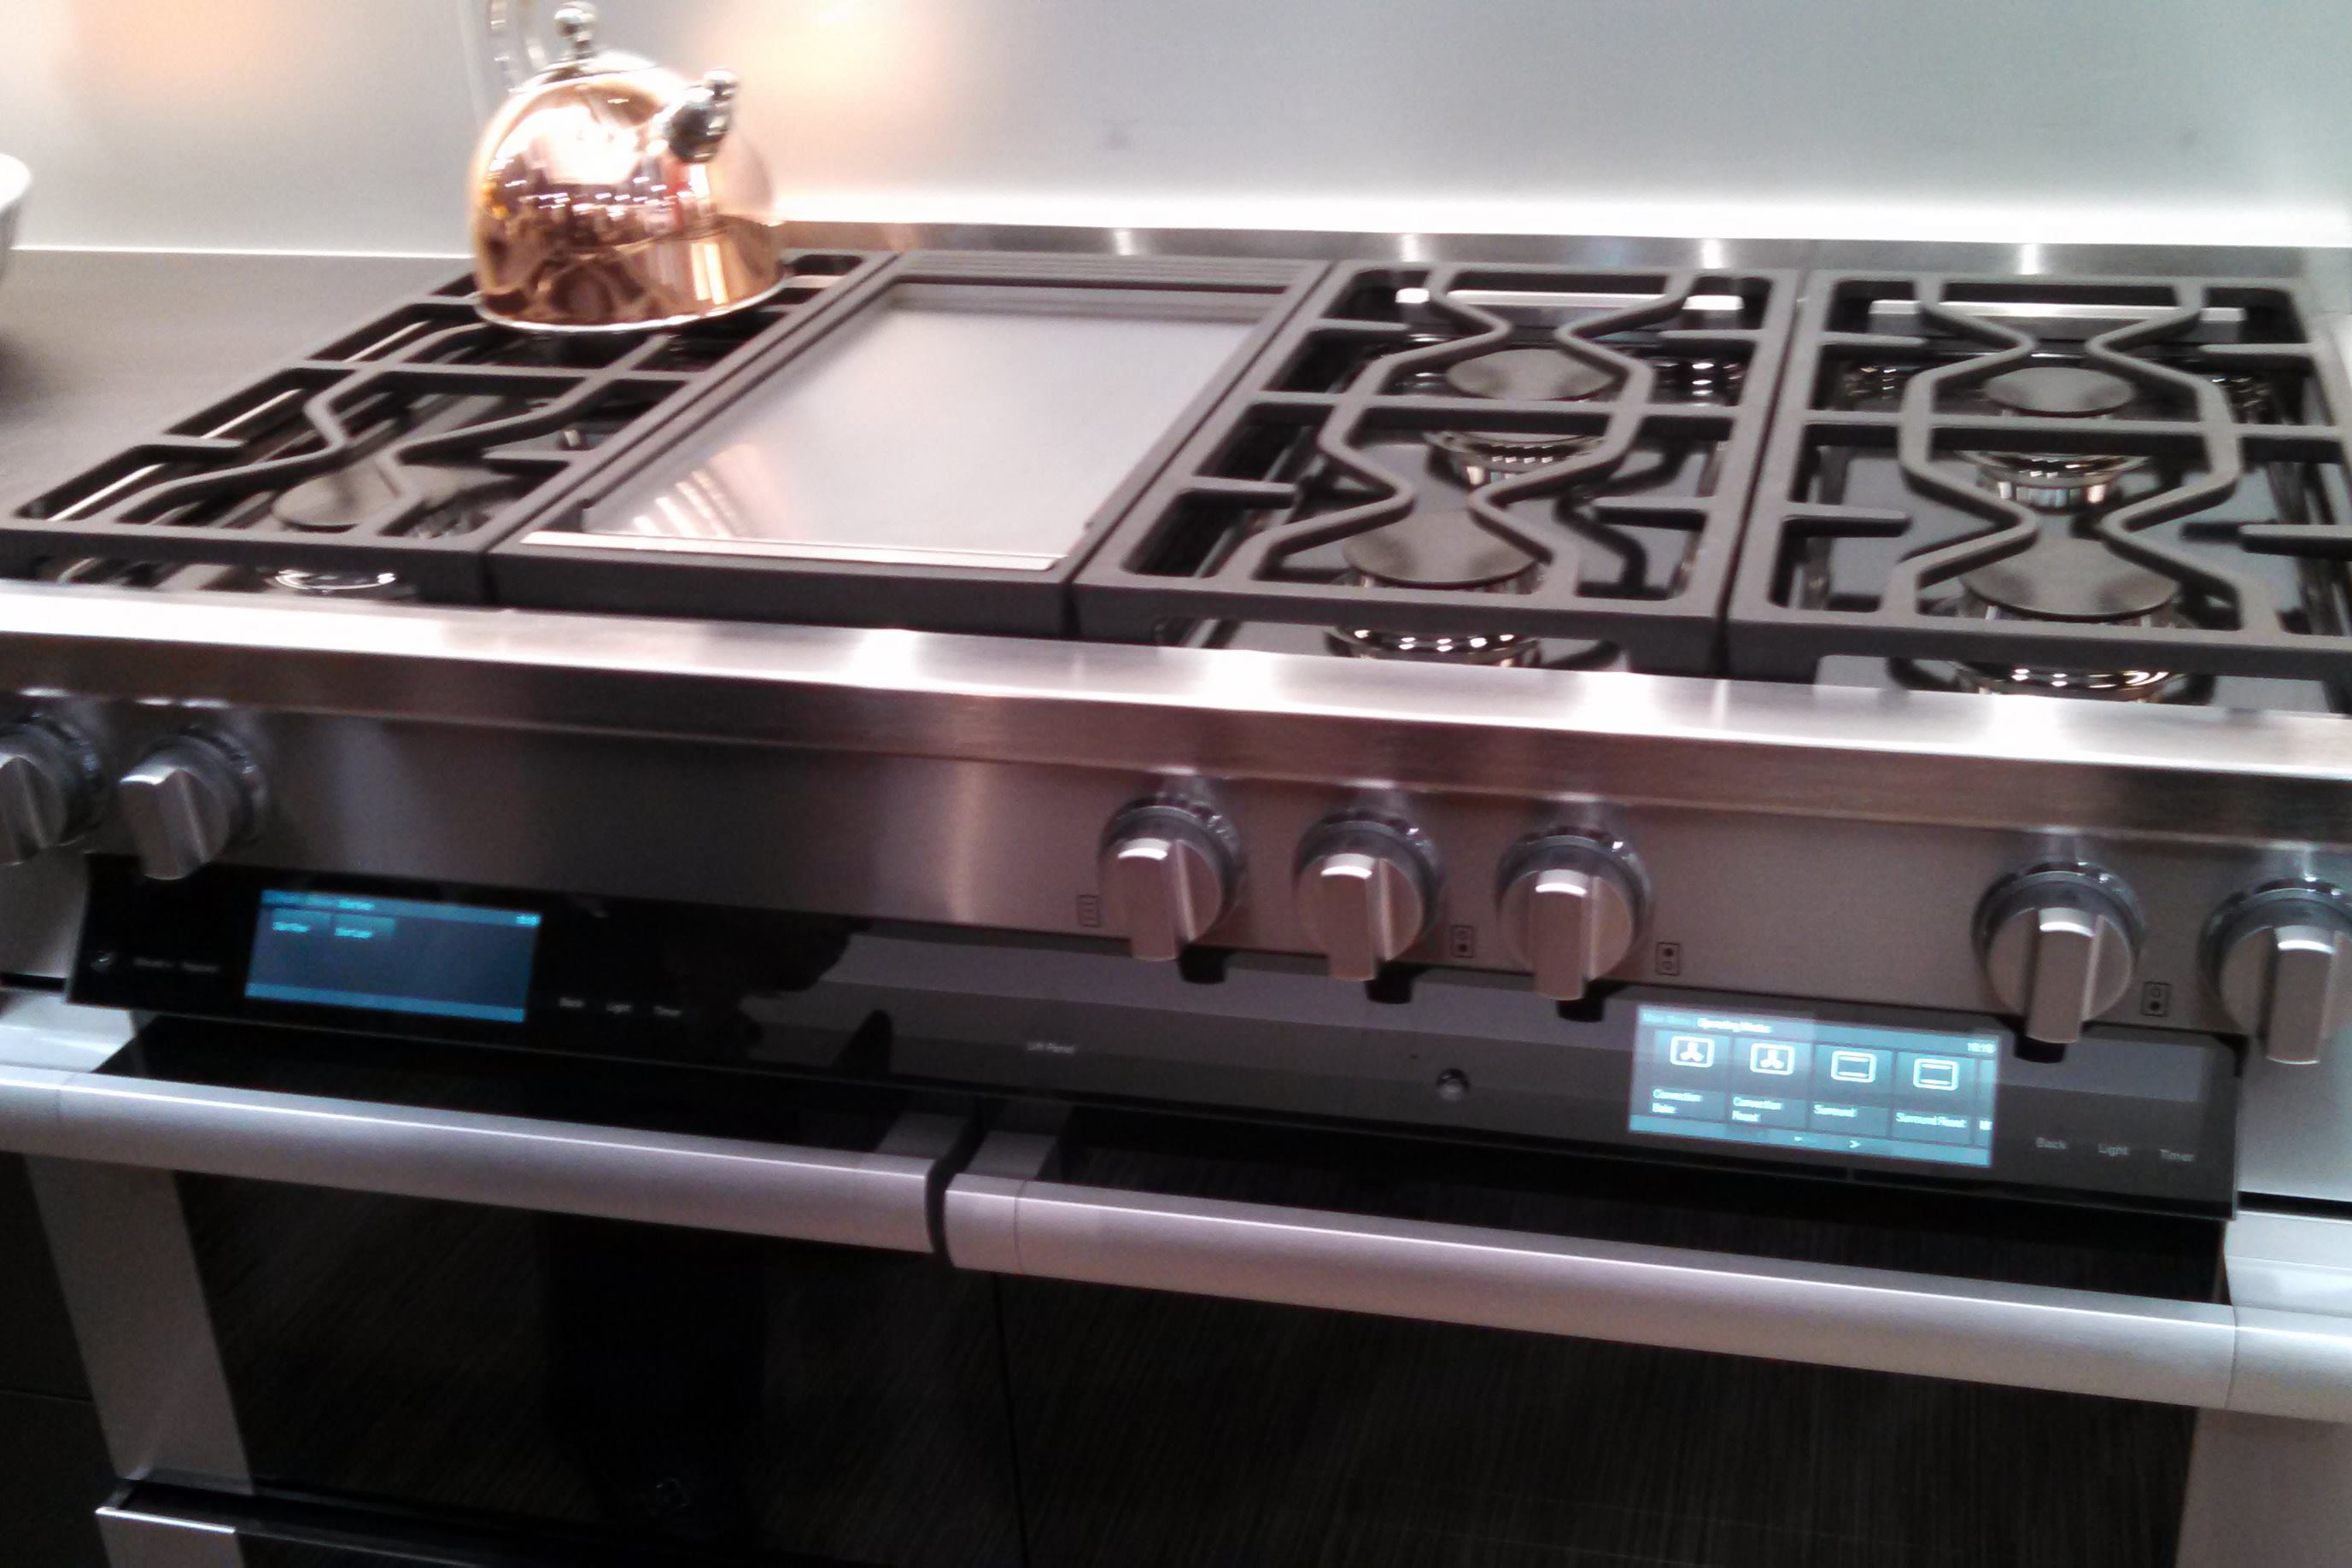 Uncategorized Foster Kitchen Appliances cooktop by foster custom home magazine appliances cabinets high end shine at kbis 2015